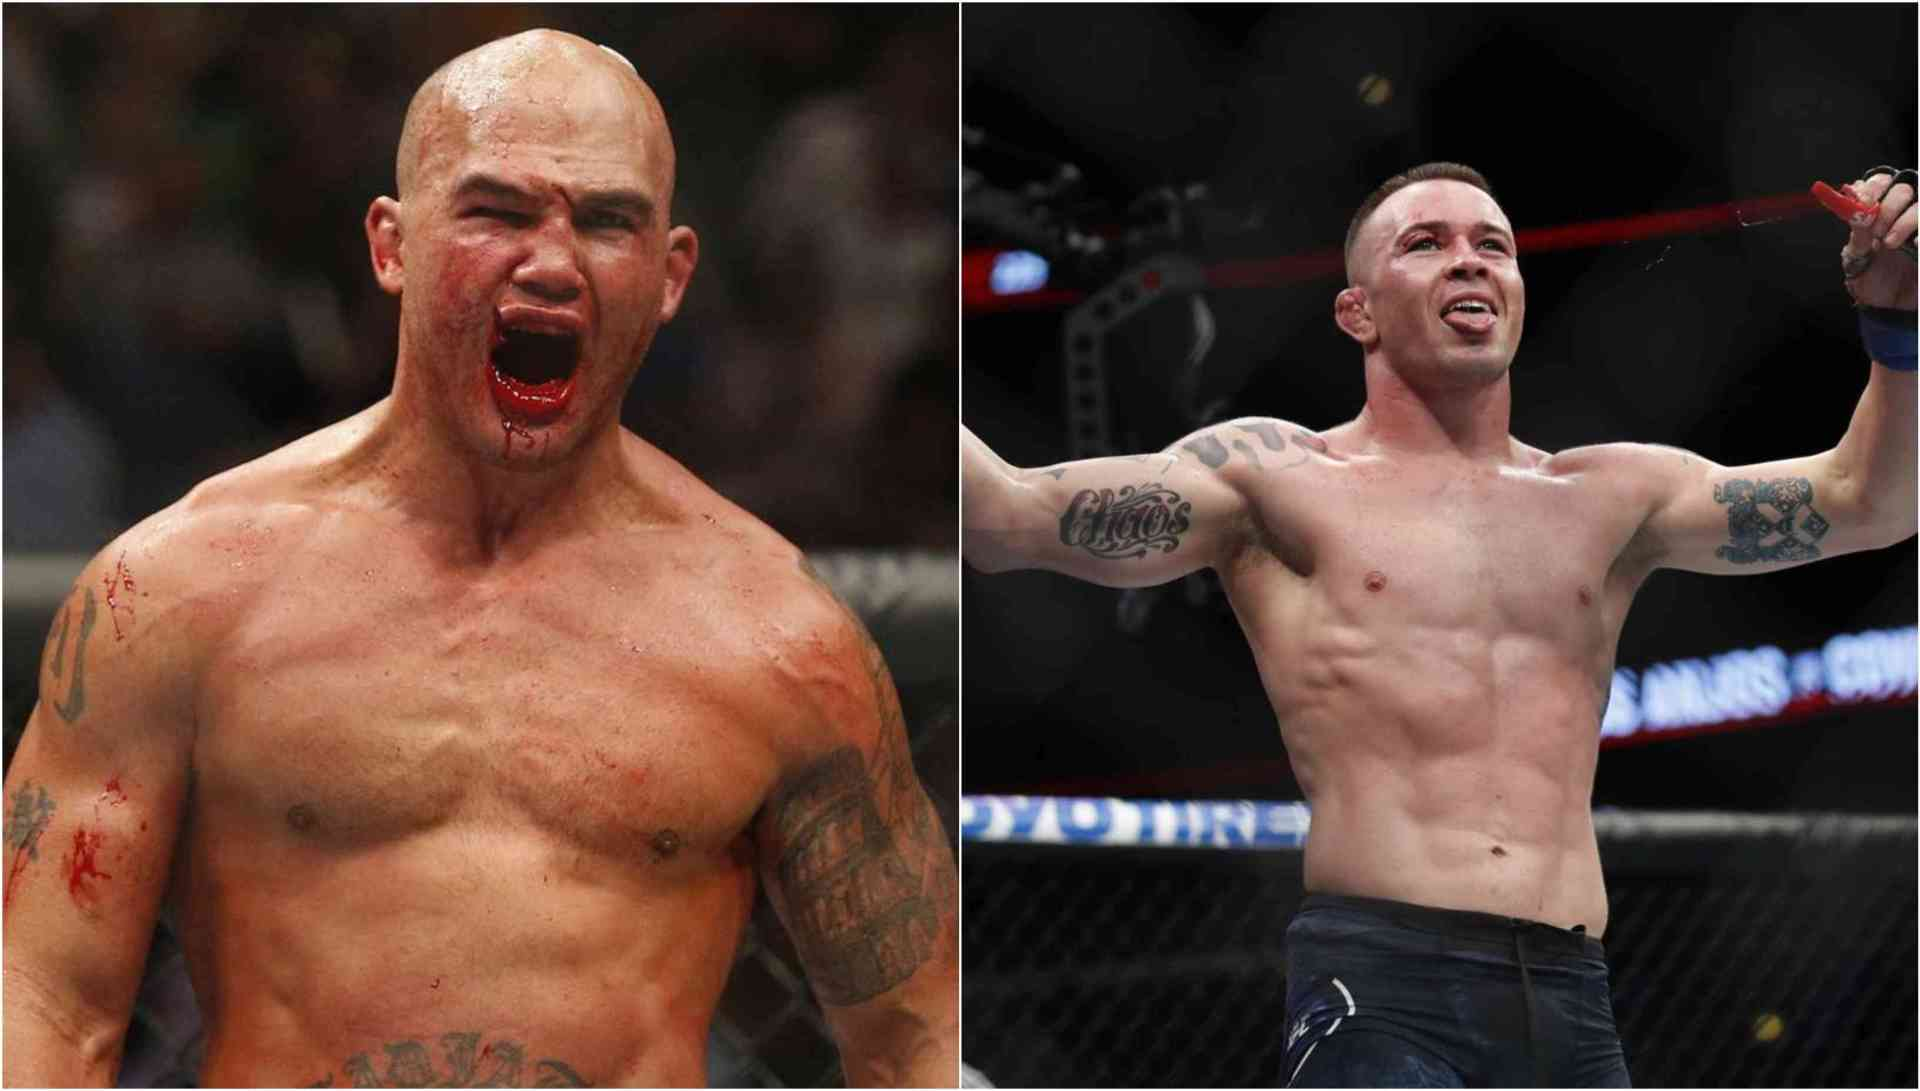 Colby Covington vs Robbie Lawler verbally agreed for UFC Fight Night 156 on August 3 - Colby